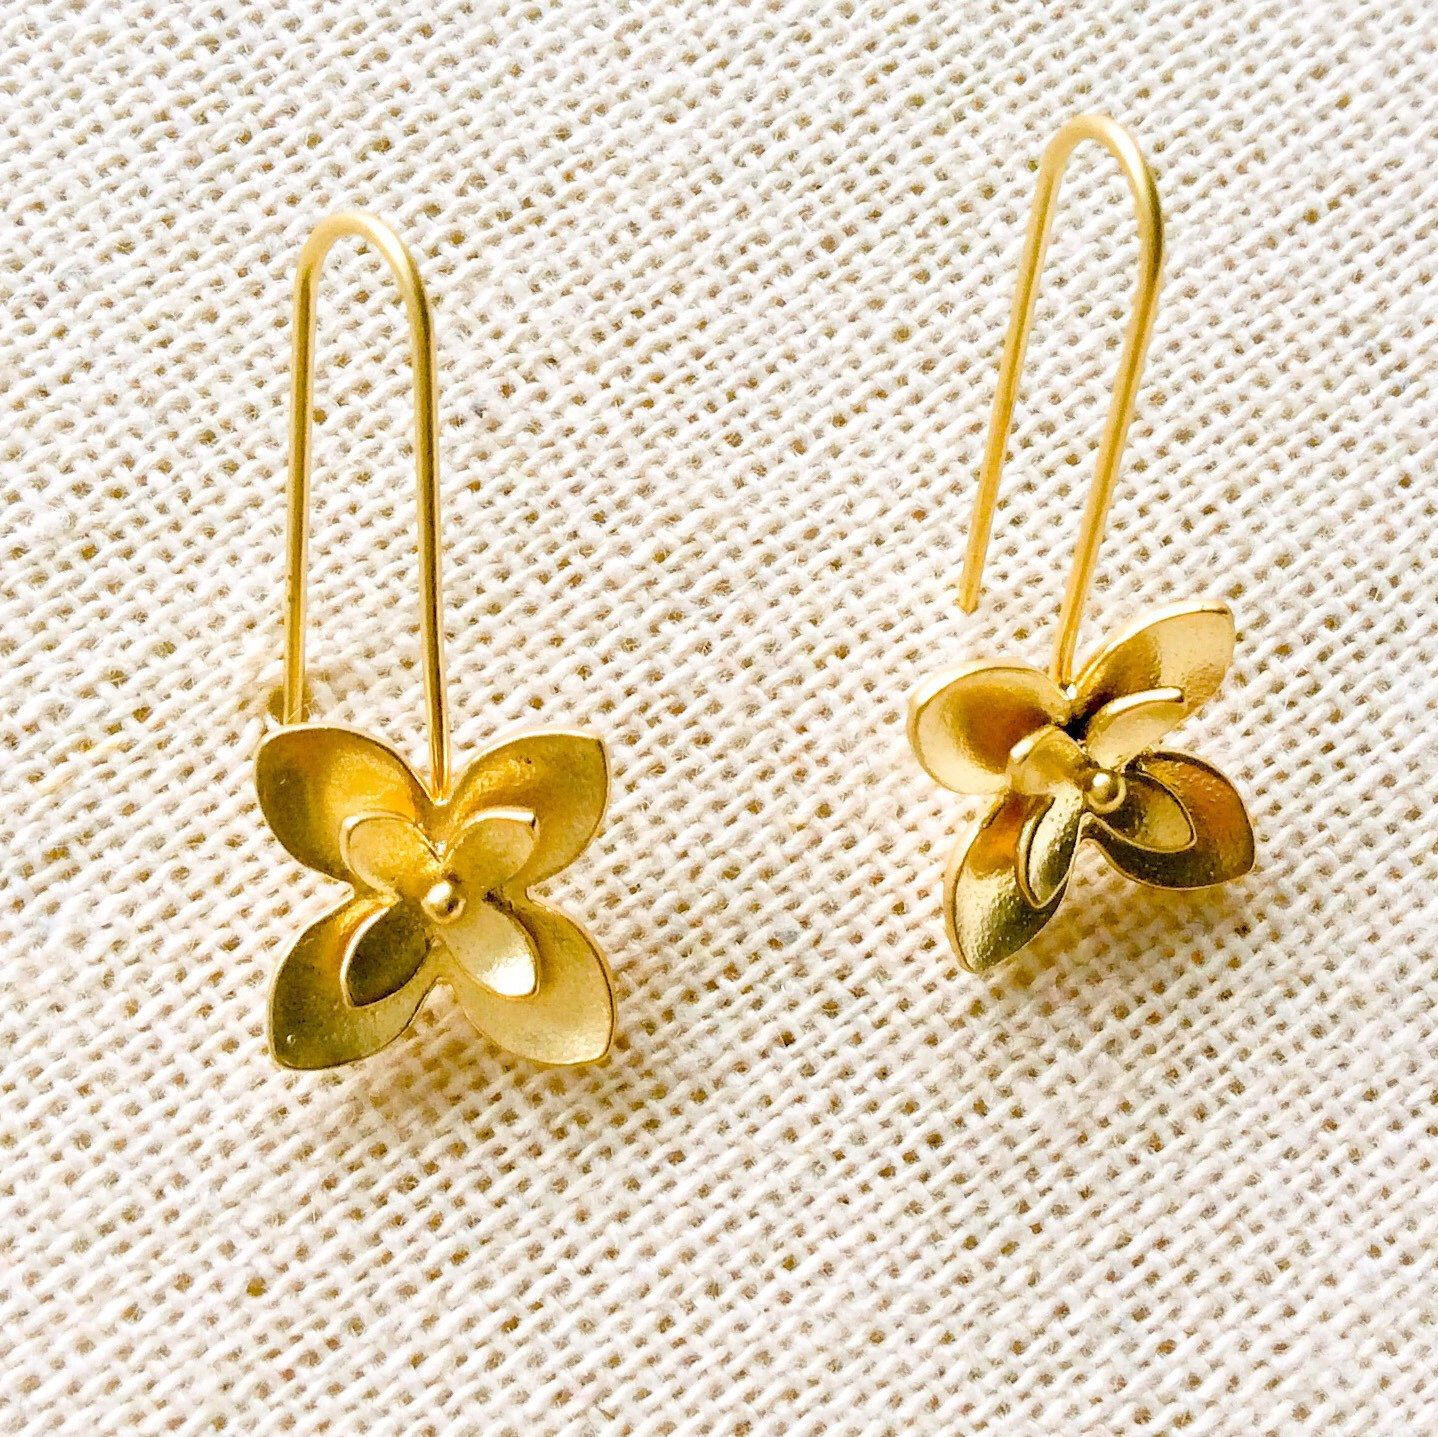 Gorgeous Gold Flower Earrings Contemporary Design Ideal For Everyday Wear Earrings Rose Gold Earrings My Jewellery